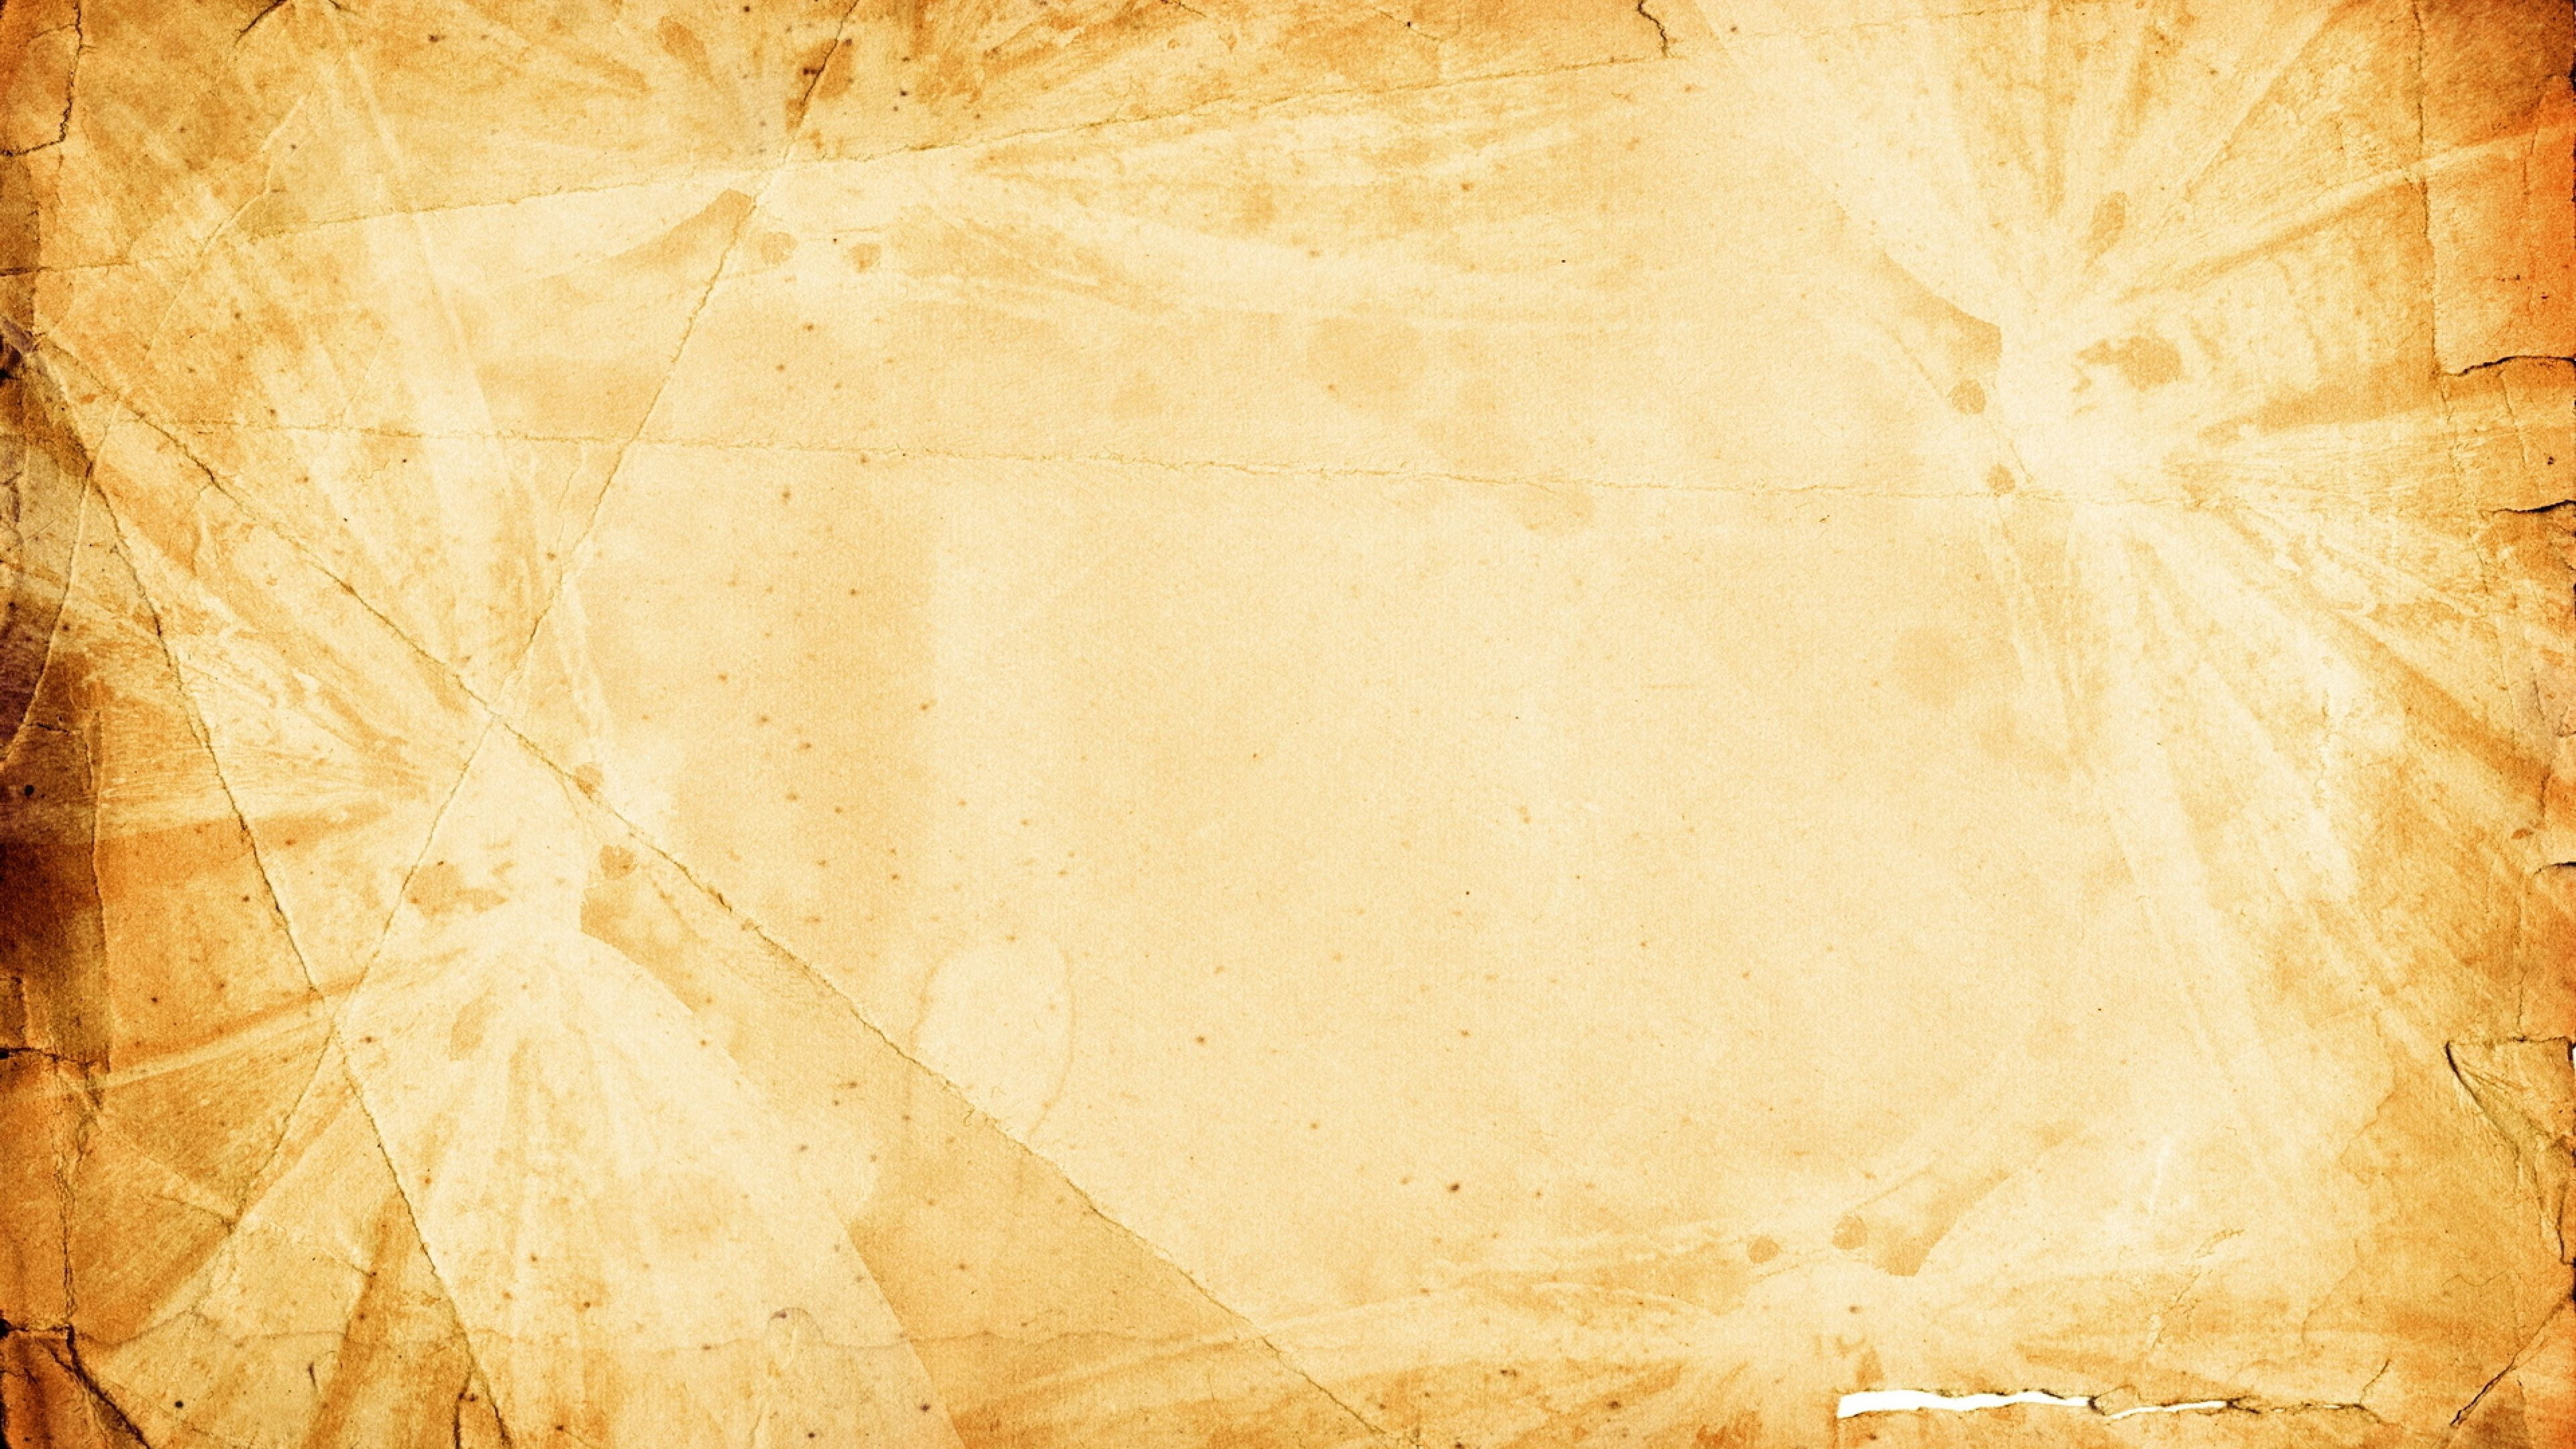 Background Spot Light Surface Texture 50715 3840x2160 Jpg 3840 2160 Dripping Paint Art Background Pictures Textured Background